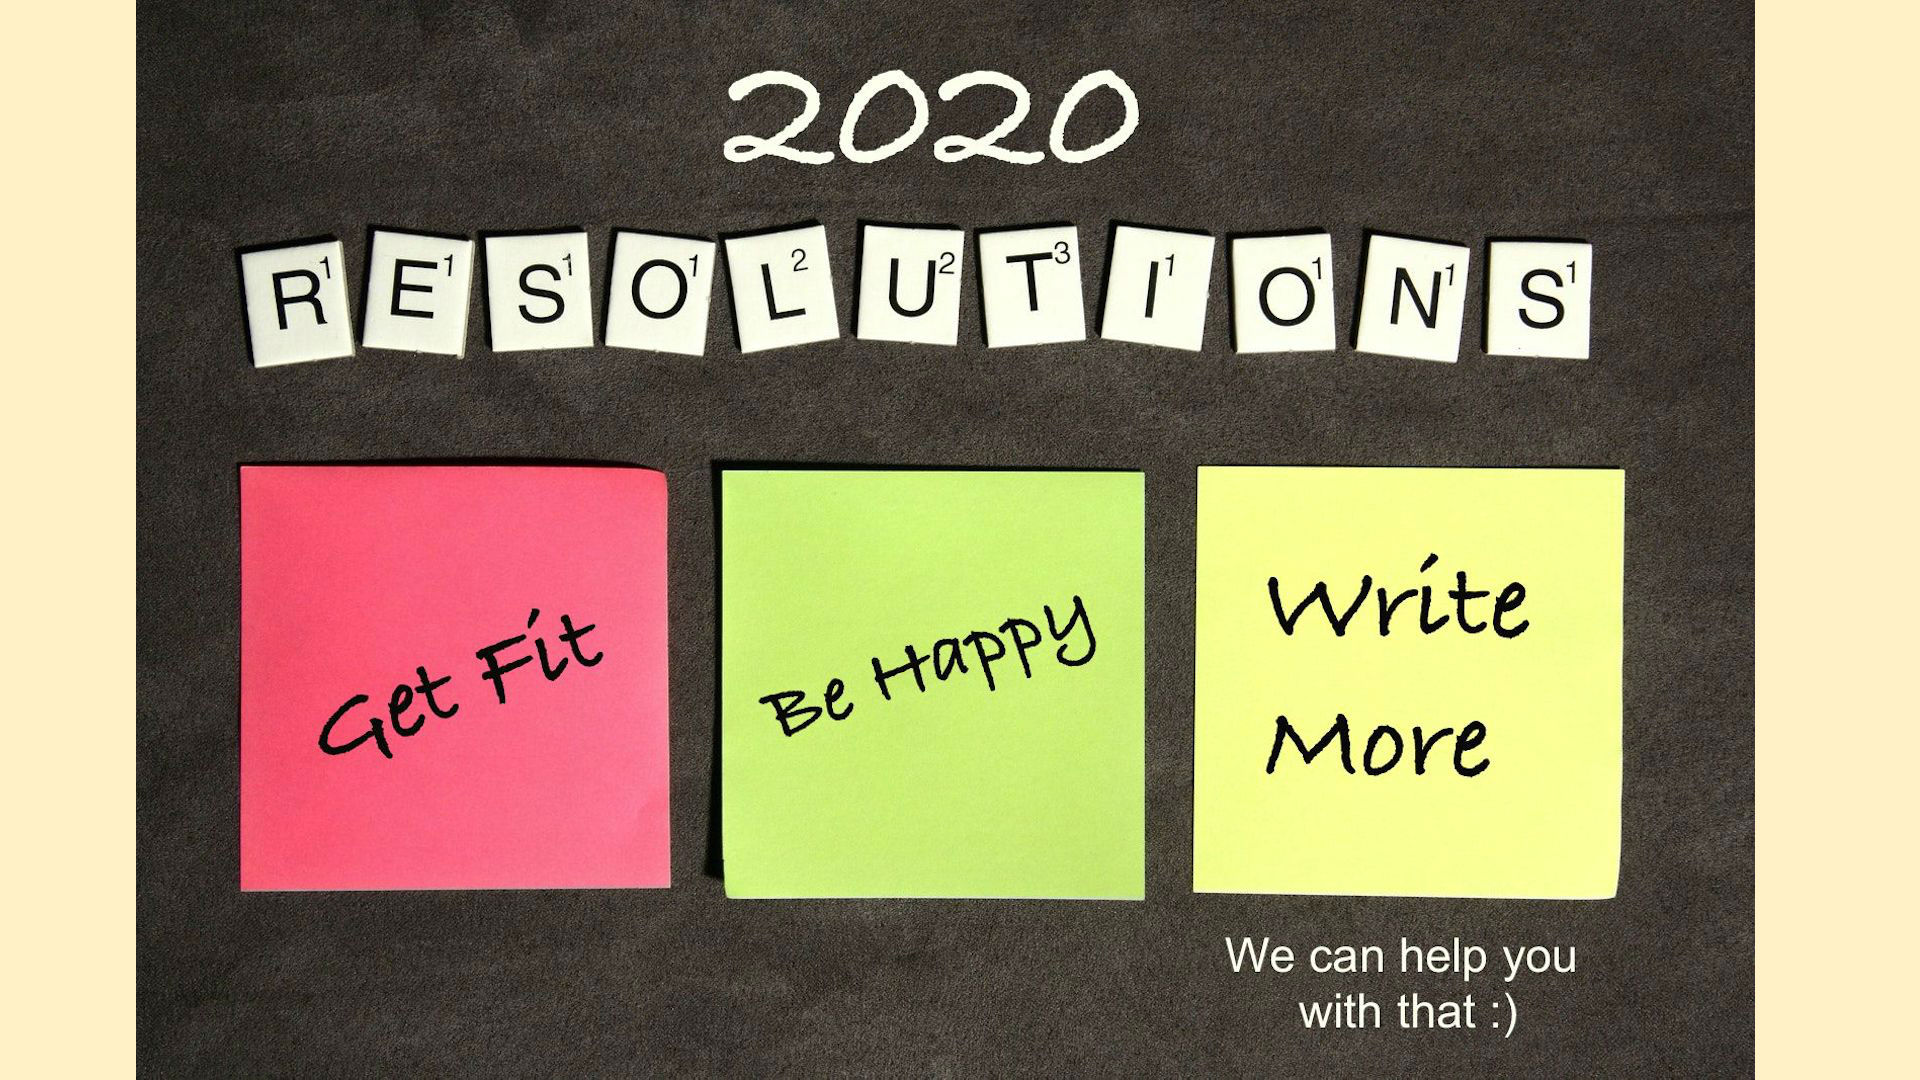 Start writing in 2020